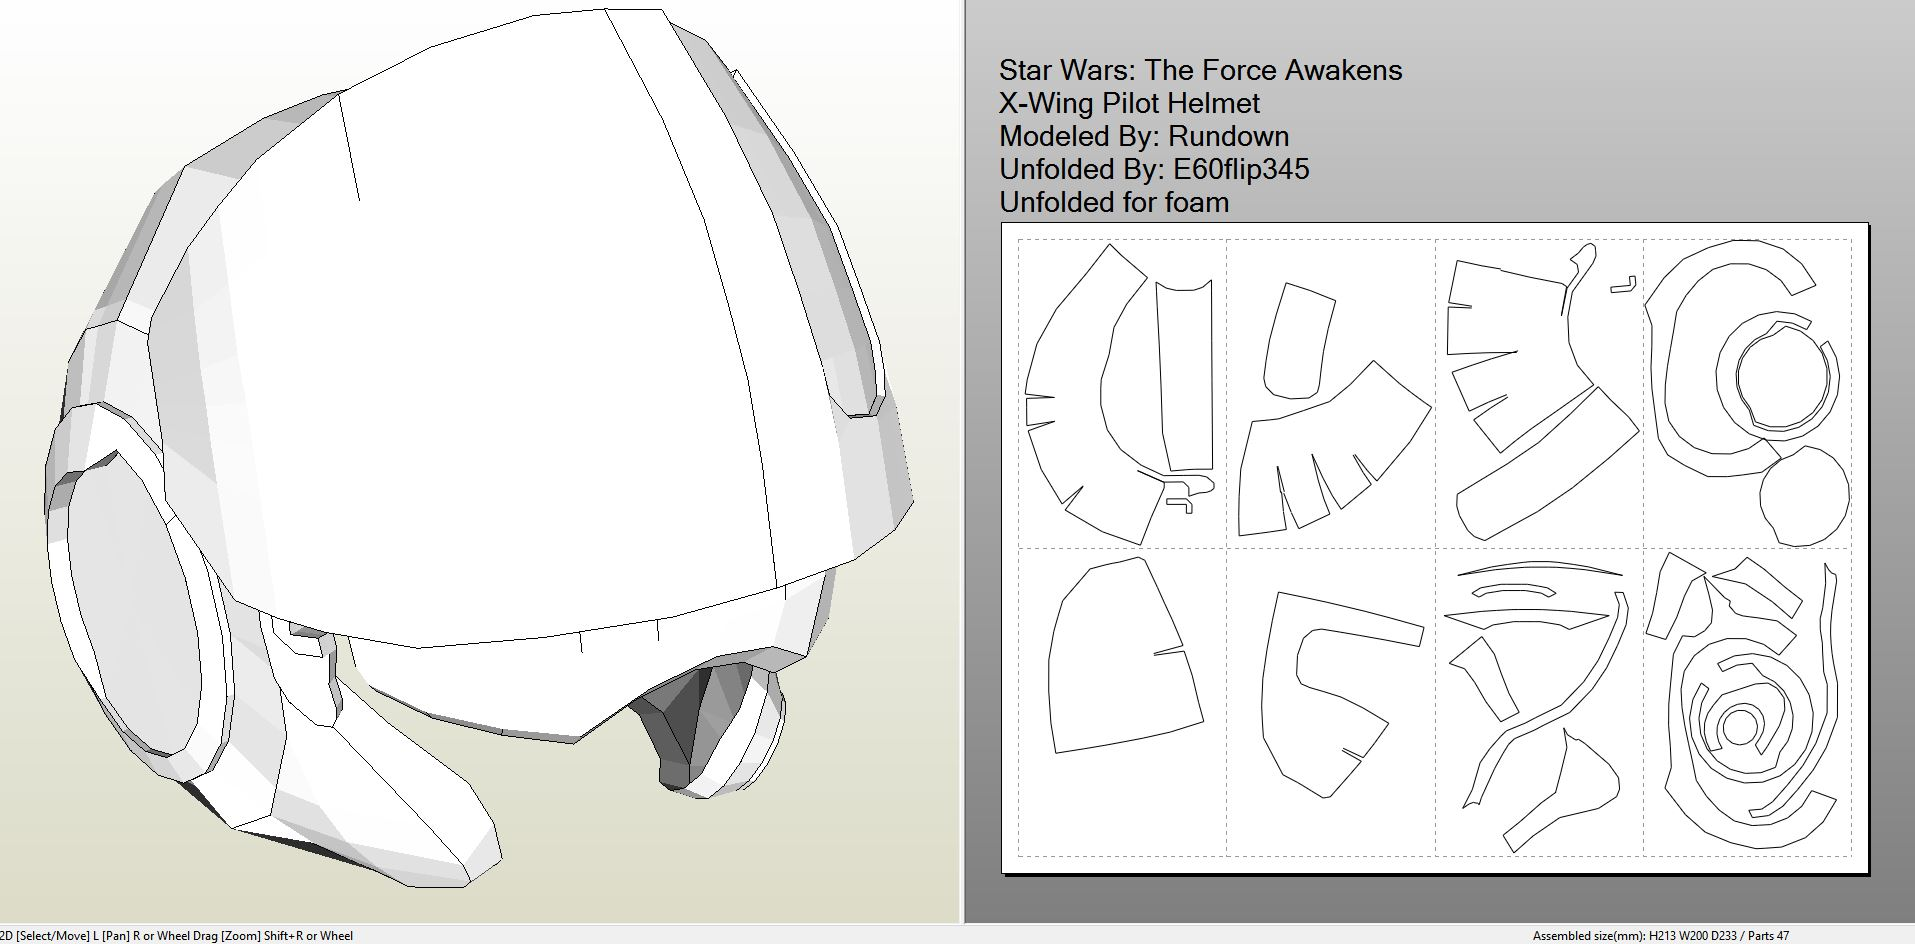 Foamcraft pdo file template for star wars tfa x wing pilot starwarstheforceawakensxwingpilothelmetfoam pronofoot35fo Image collections